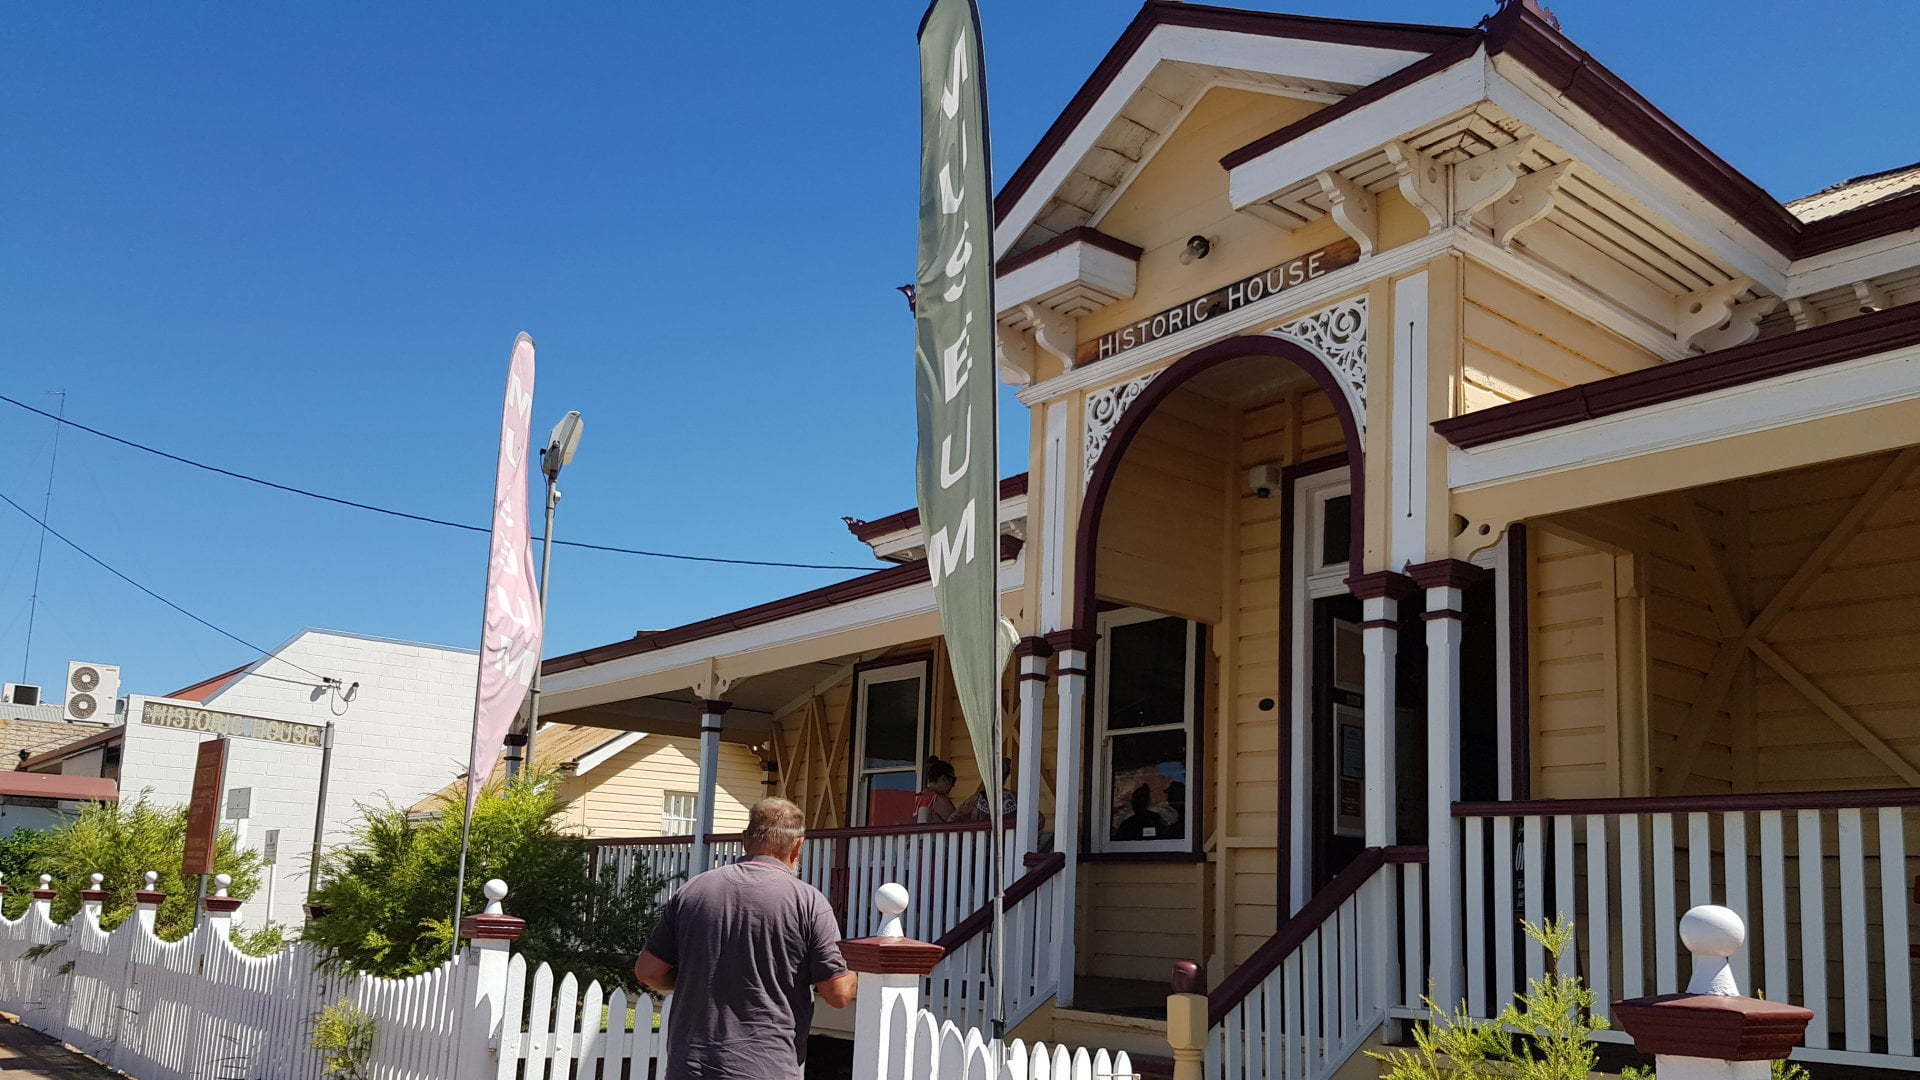 Front of the Historic House in Charleville, it was the chambers and manager's residence of the Queensland National Bank, built in 1889. Today it is a museum, showcasing a collection of items relating to the original period, both inside the house and outside.